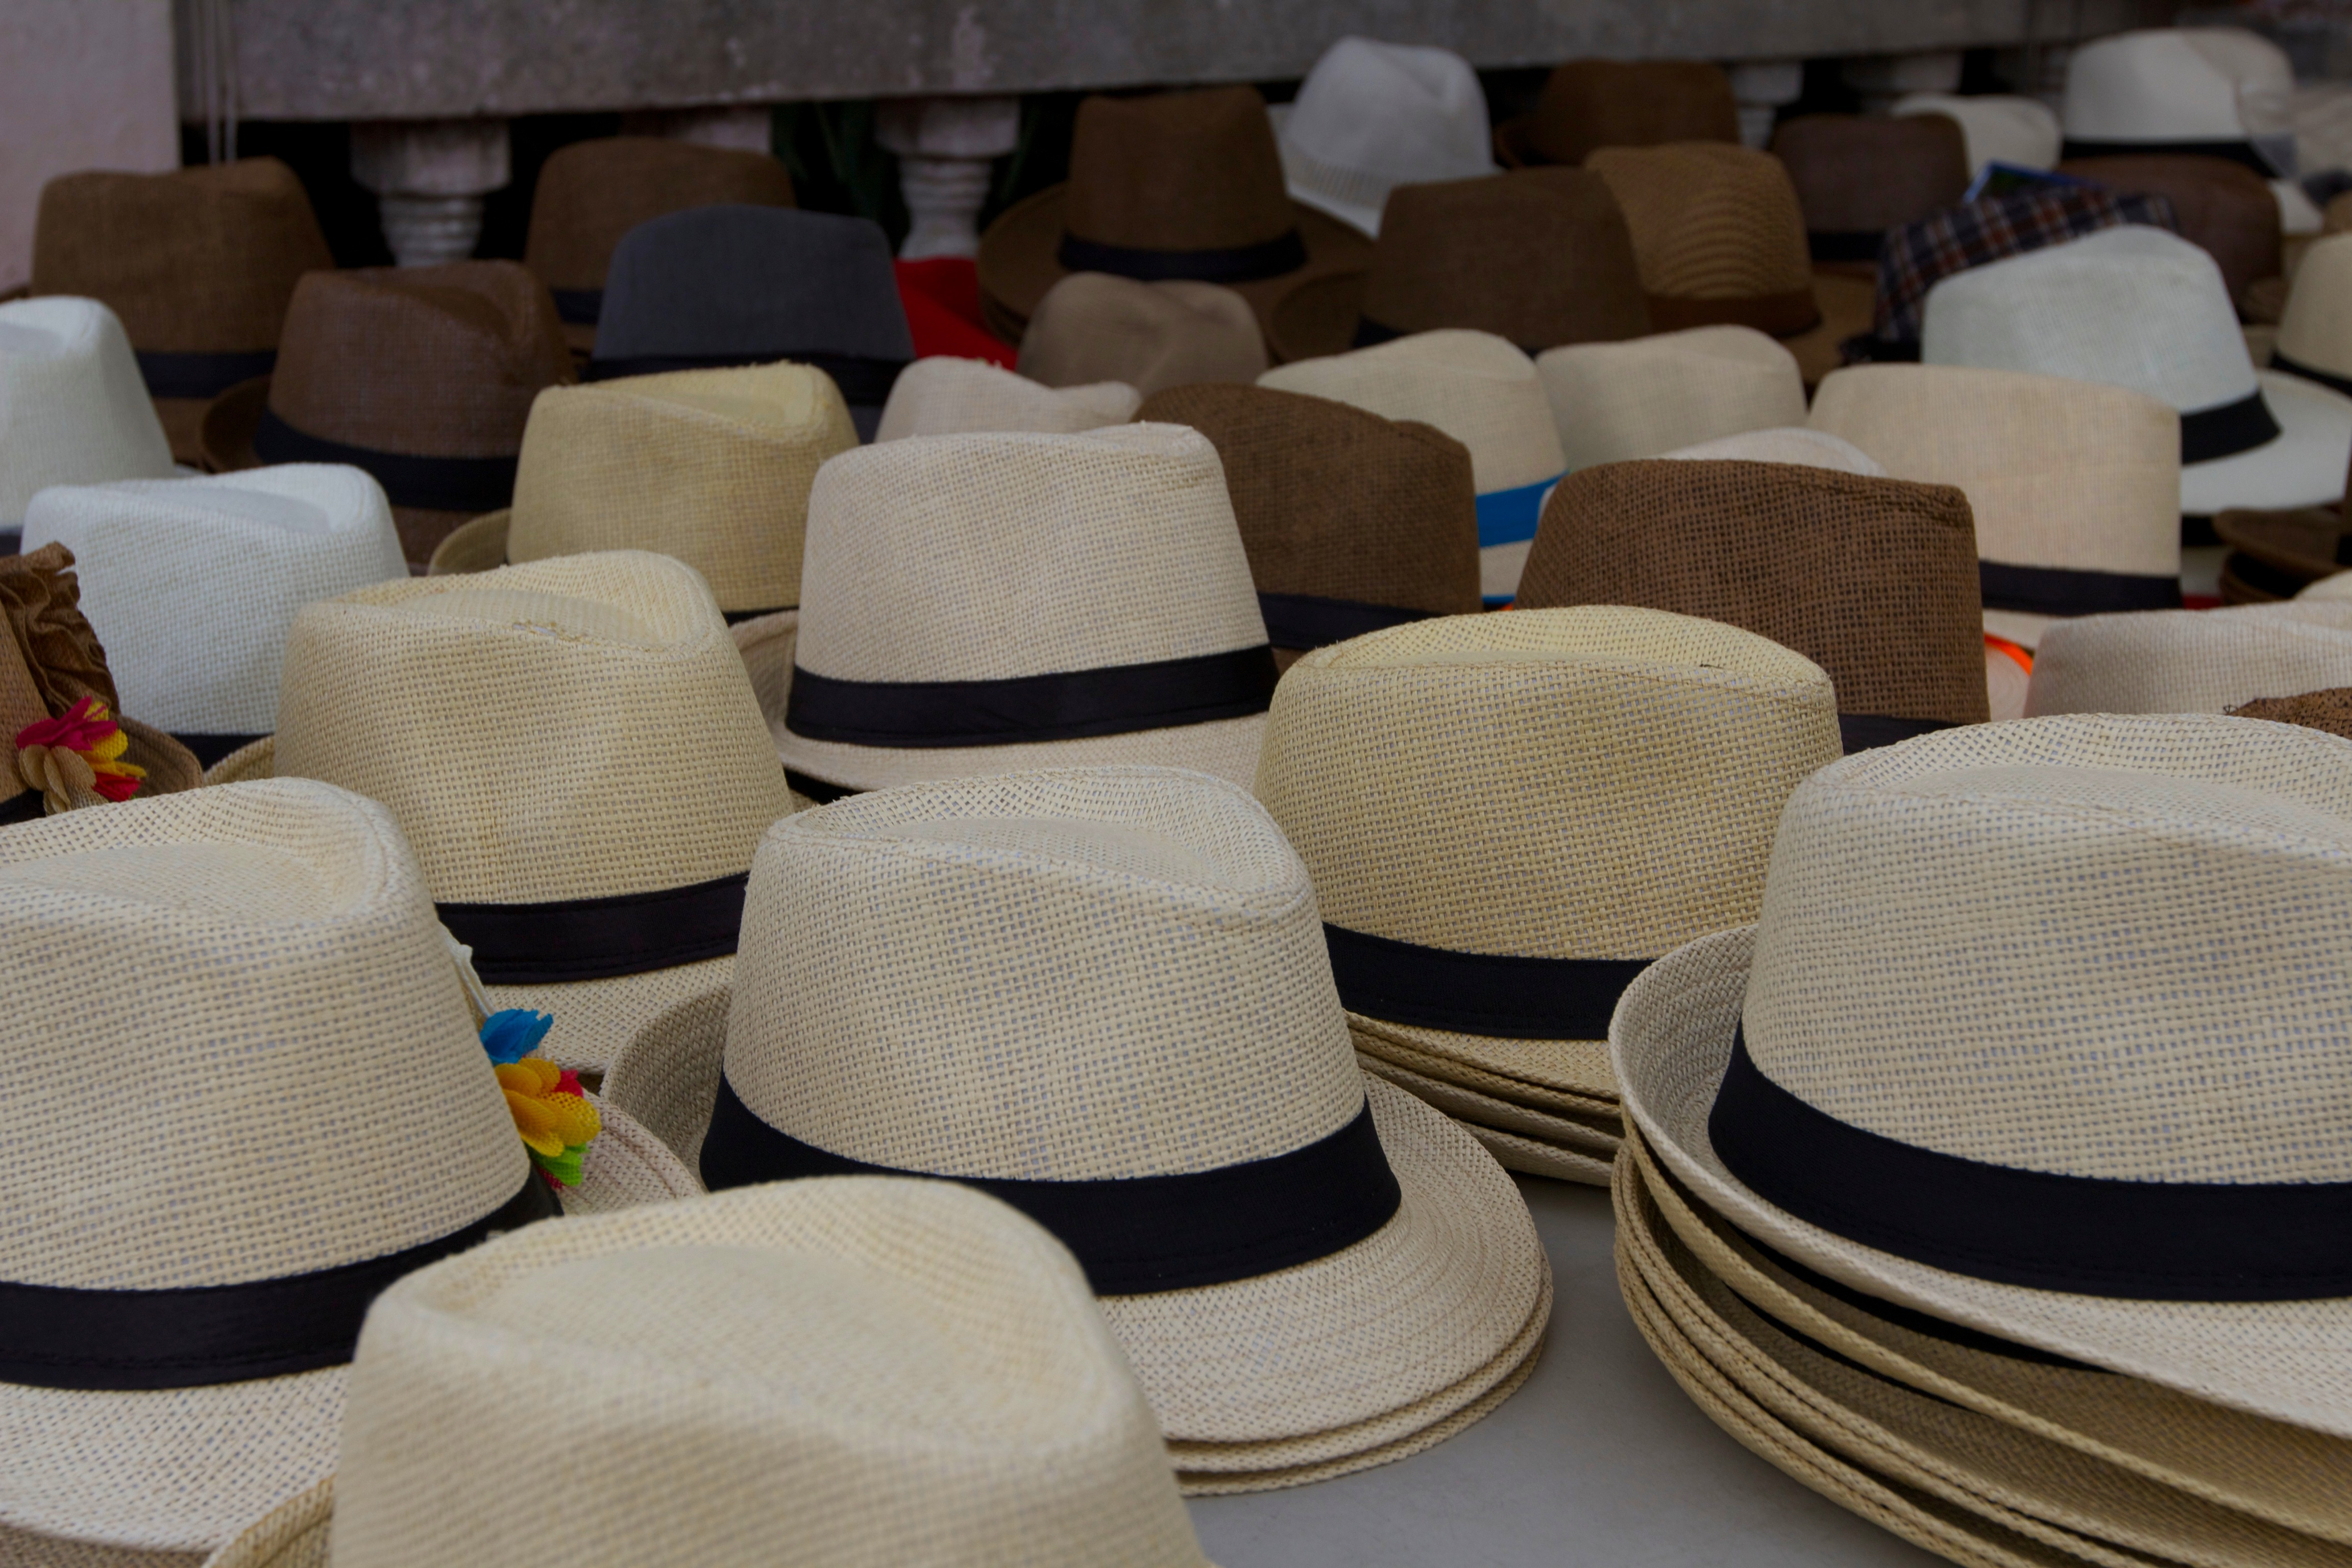 37836264 There were Panama hats (made in Ecuador for the high quality ones, China for